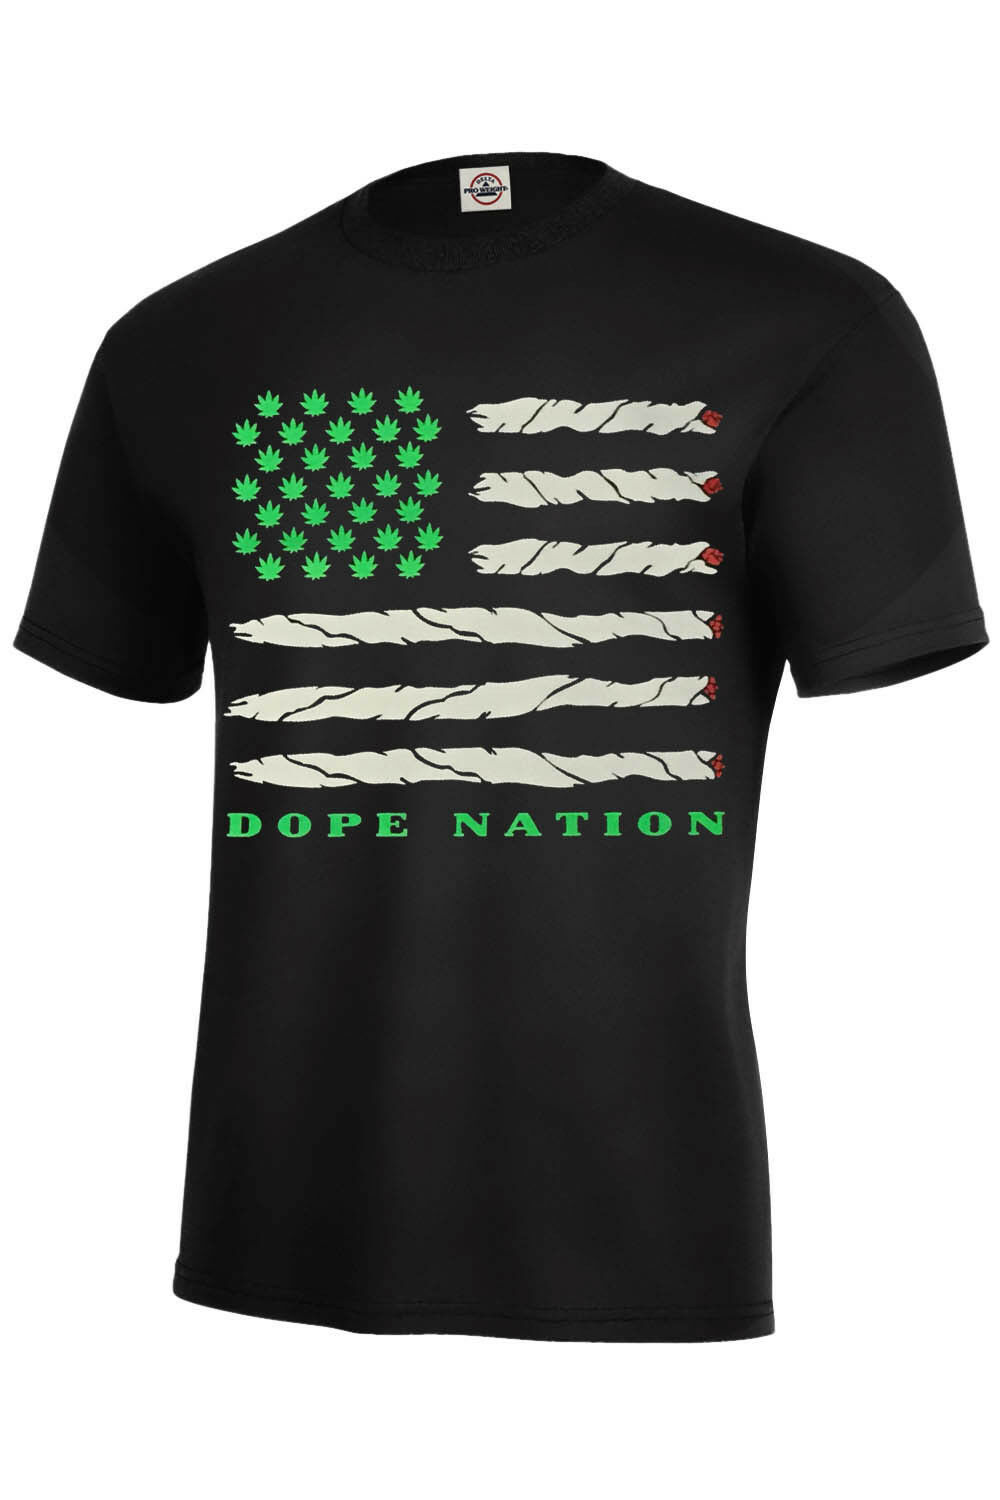 Dope Nation T-Shirt Dope Assorted Color Best Seller Weed Marijuana Adult S-5XL 1